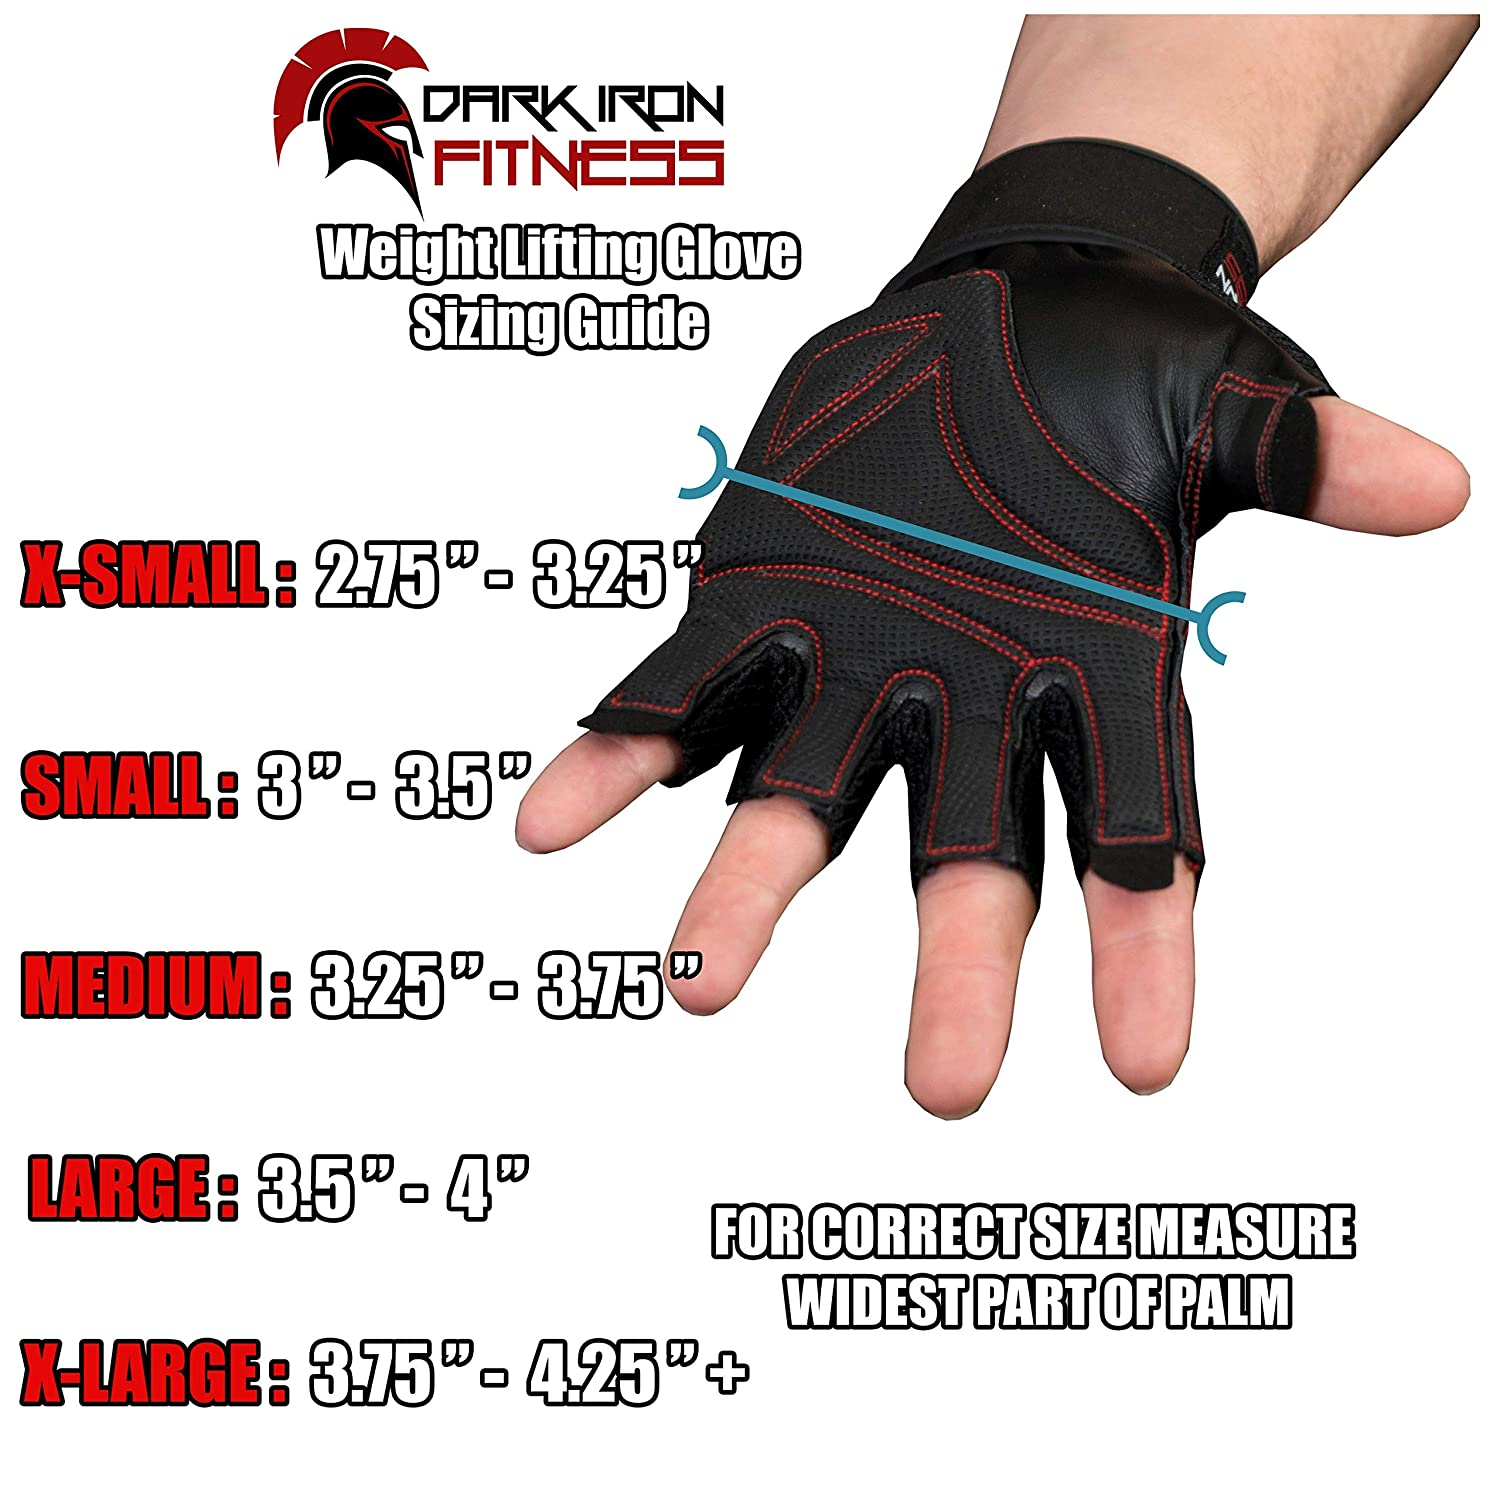 Bench Pressing with Gloves - Dark Iron Fitness' glove size chart